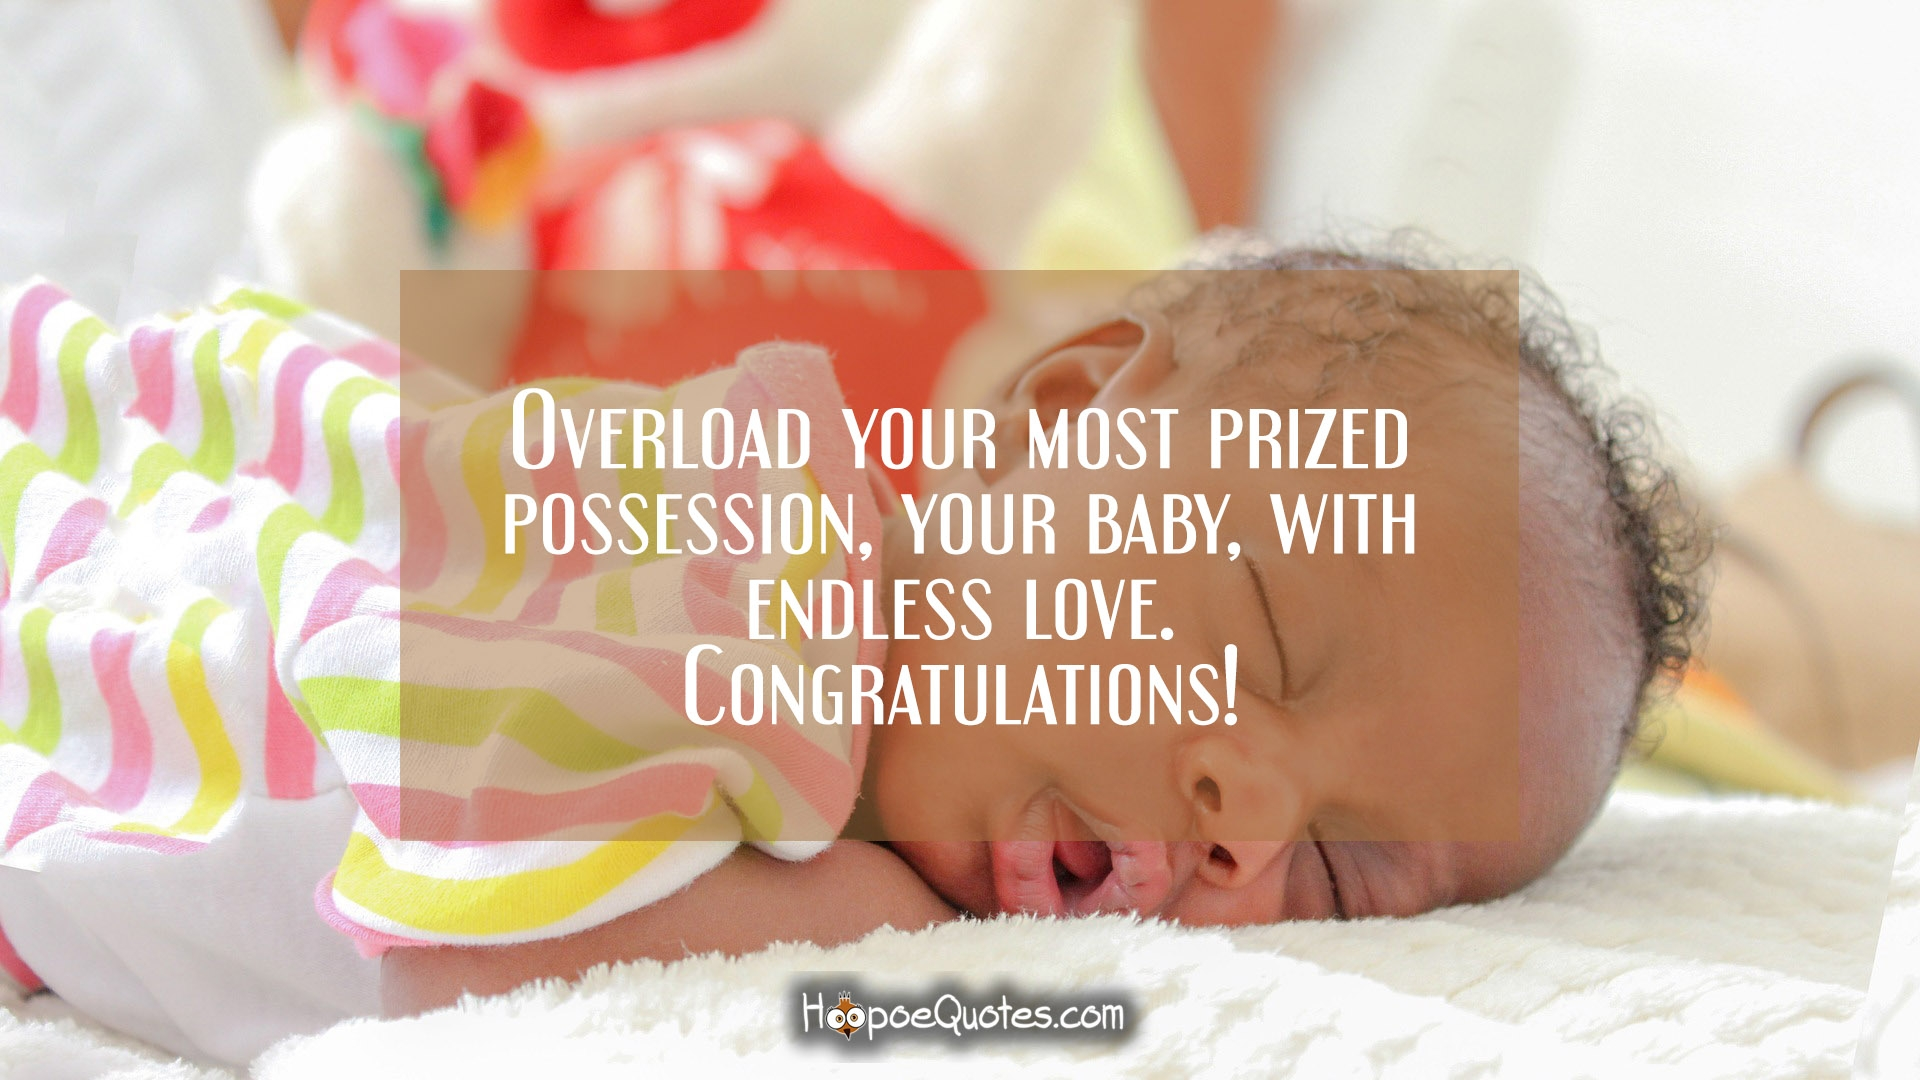 Fanciful Endless Love New Baby Wishes Overload Your Most Prized Your Parents Baby Shower New Baby Wishes baby shower New Baby Wishes